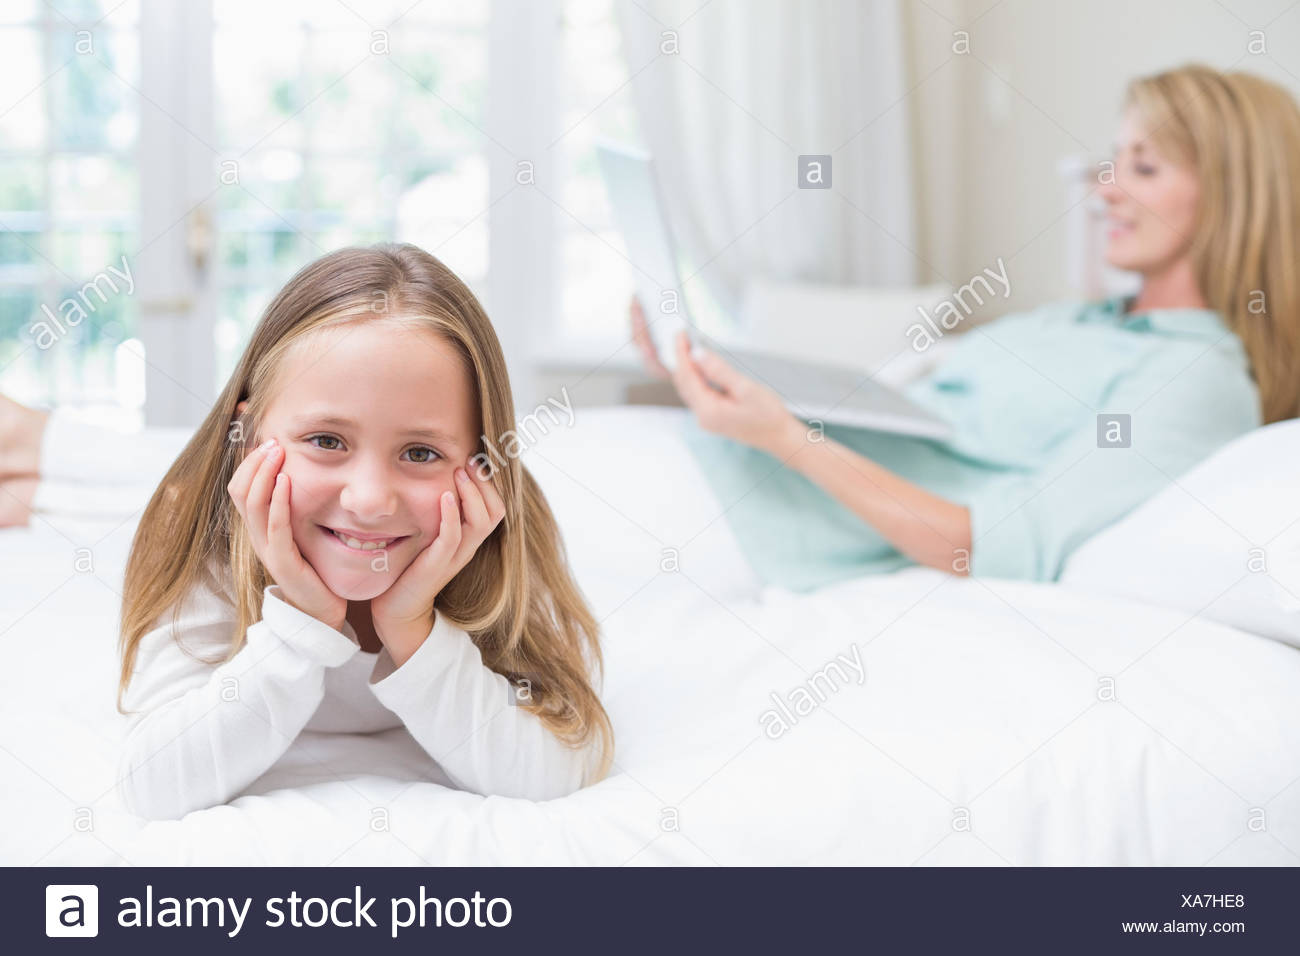 Little girl looking at camera while mother using laptop Photo Stock